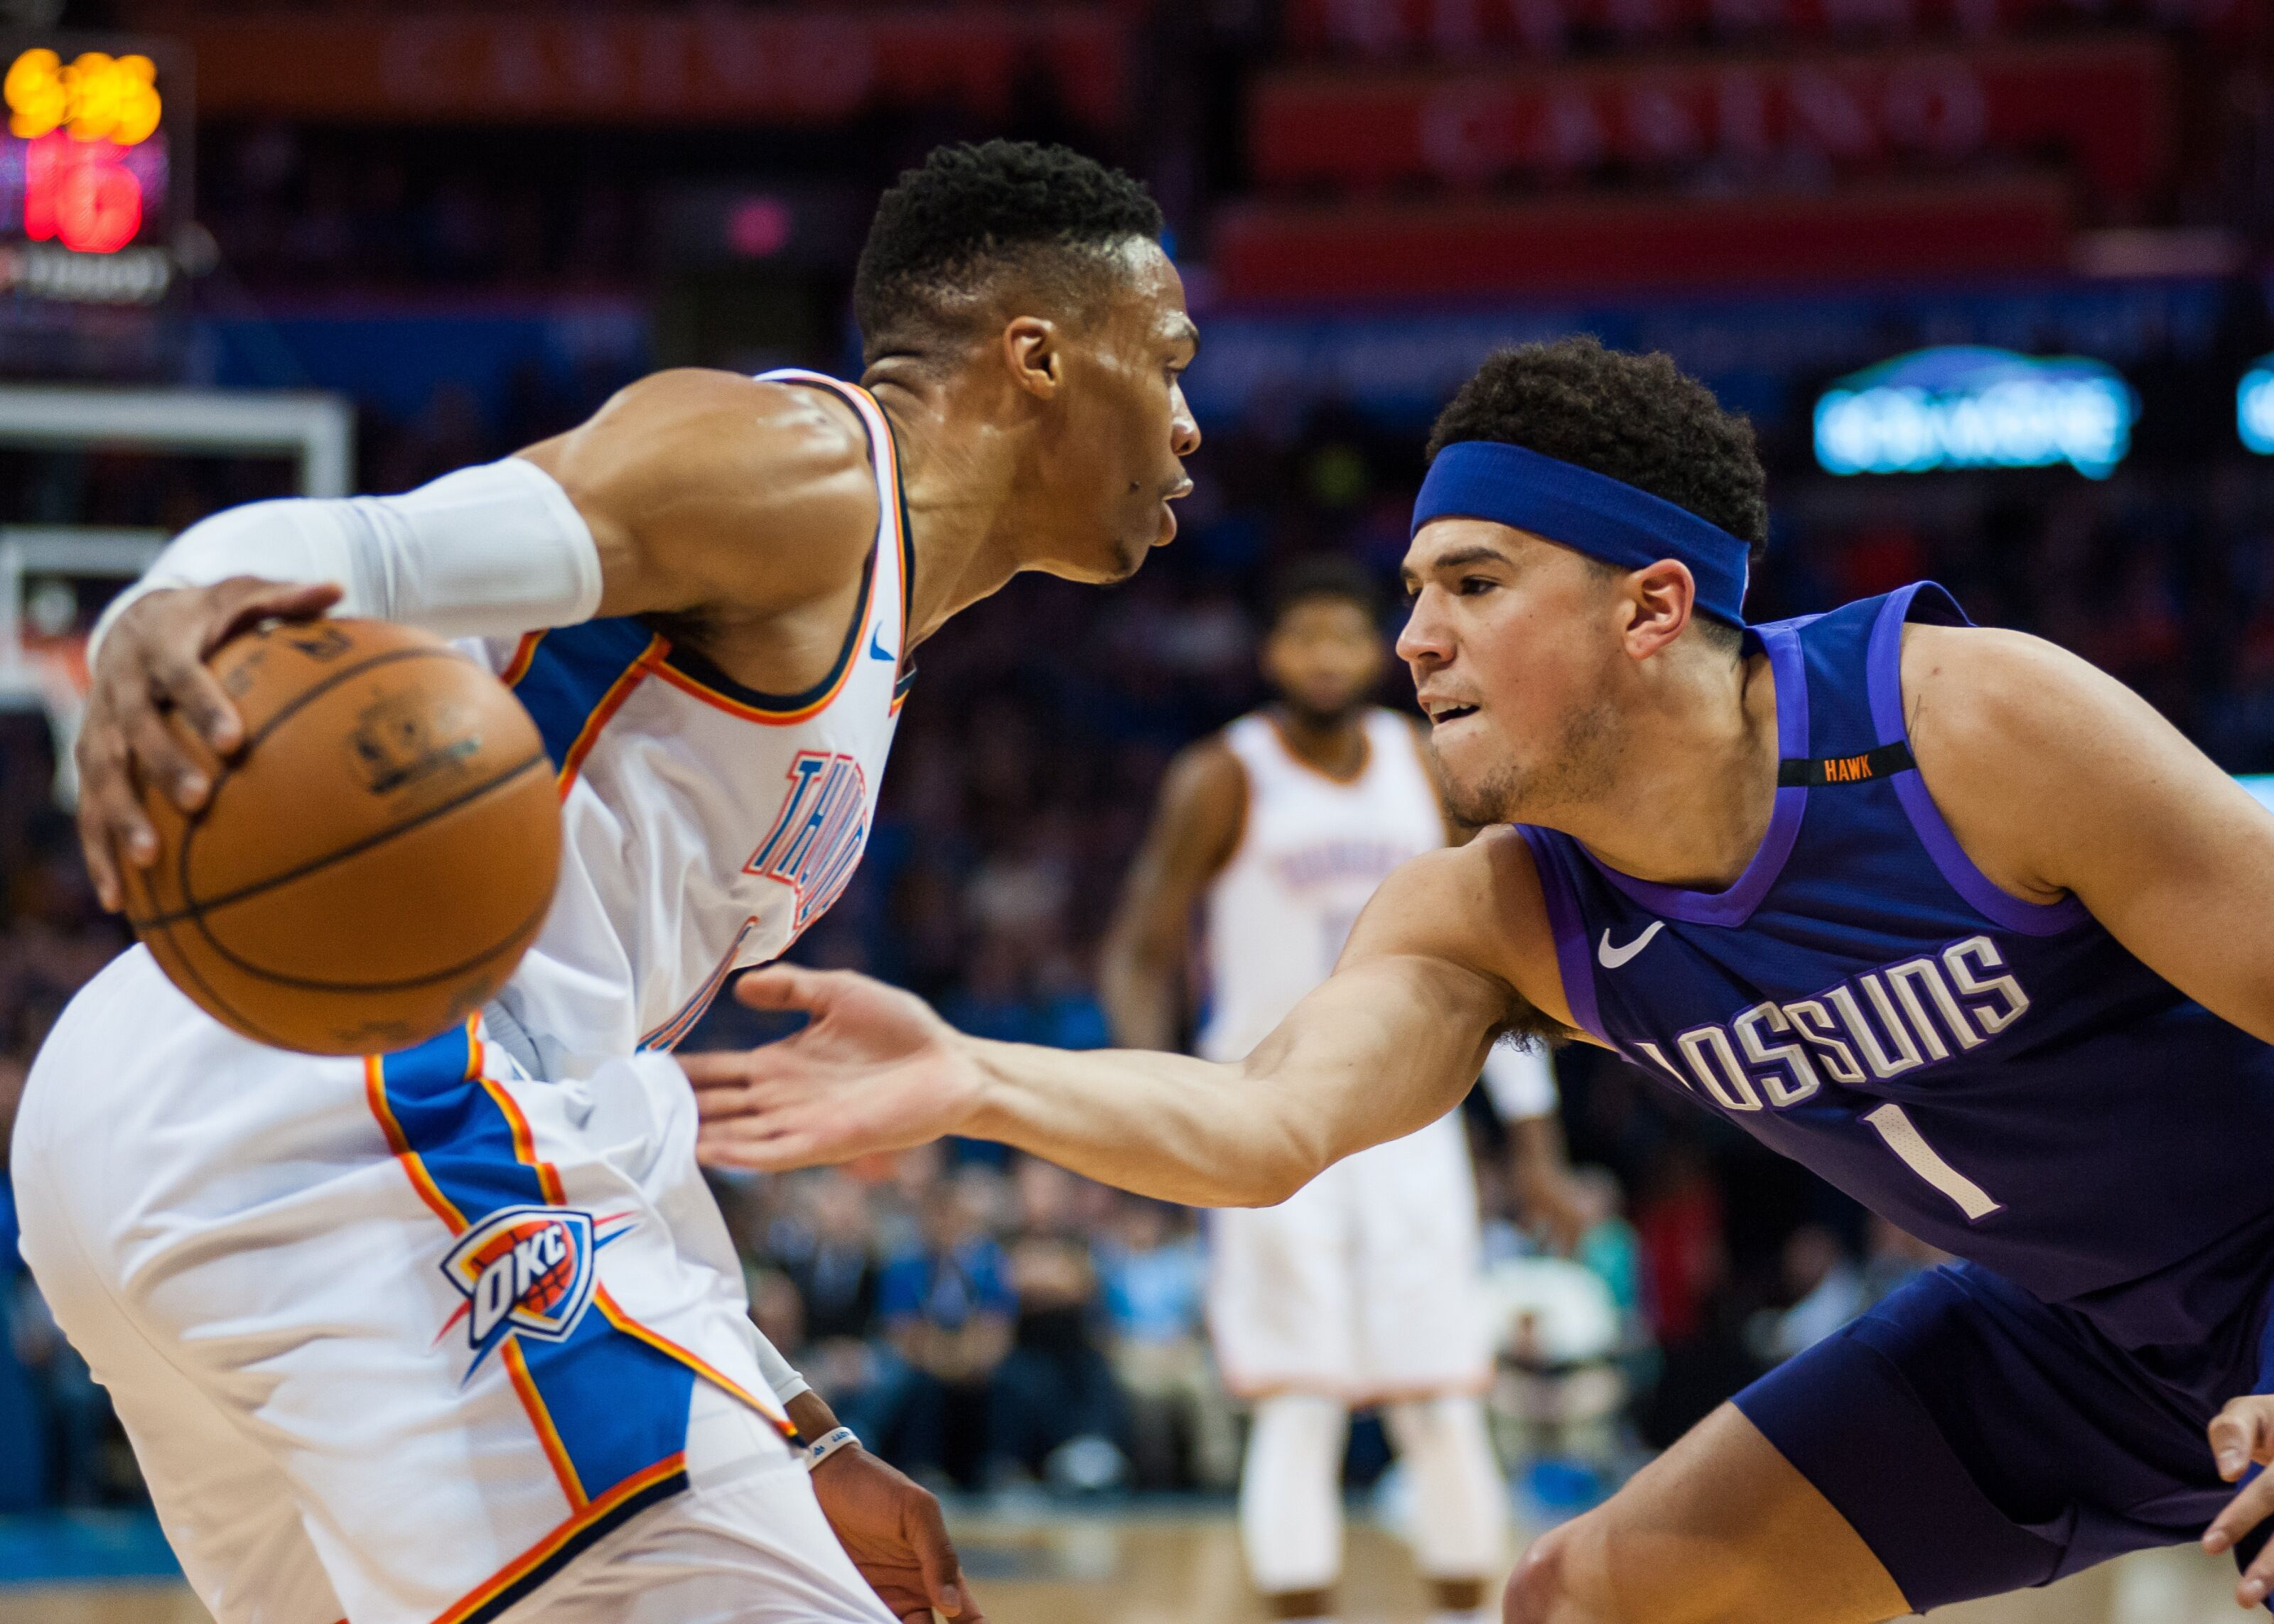 b5fdddbcde69 Would Devin Booker for Russell Westbrook work for the Suns  - Valley of the  Suns